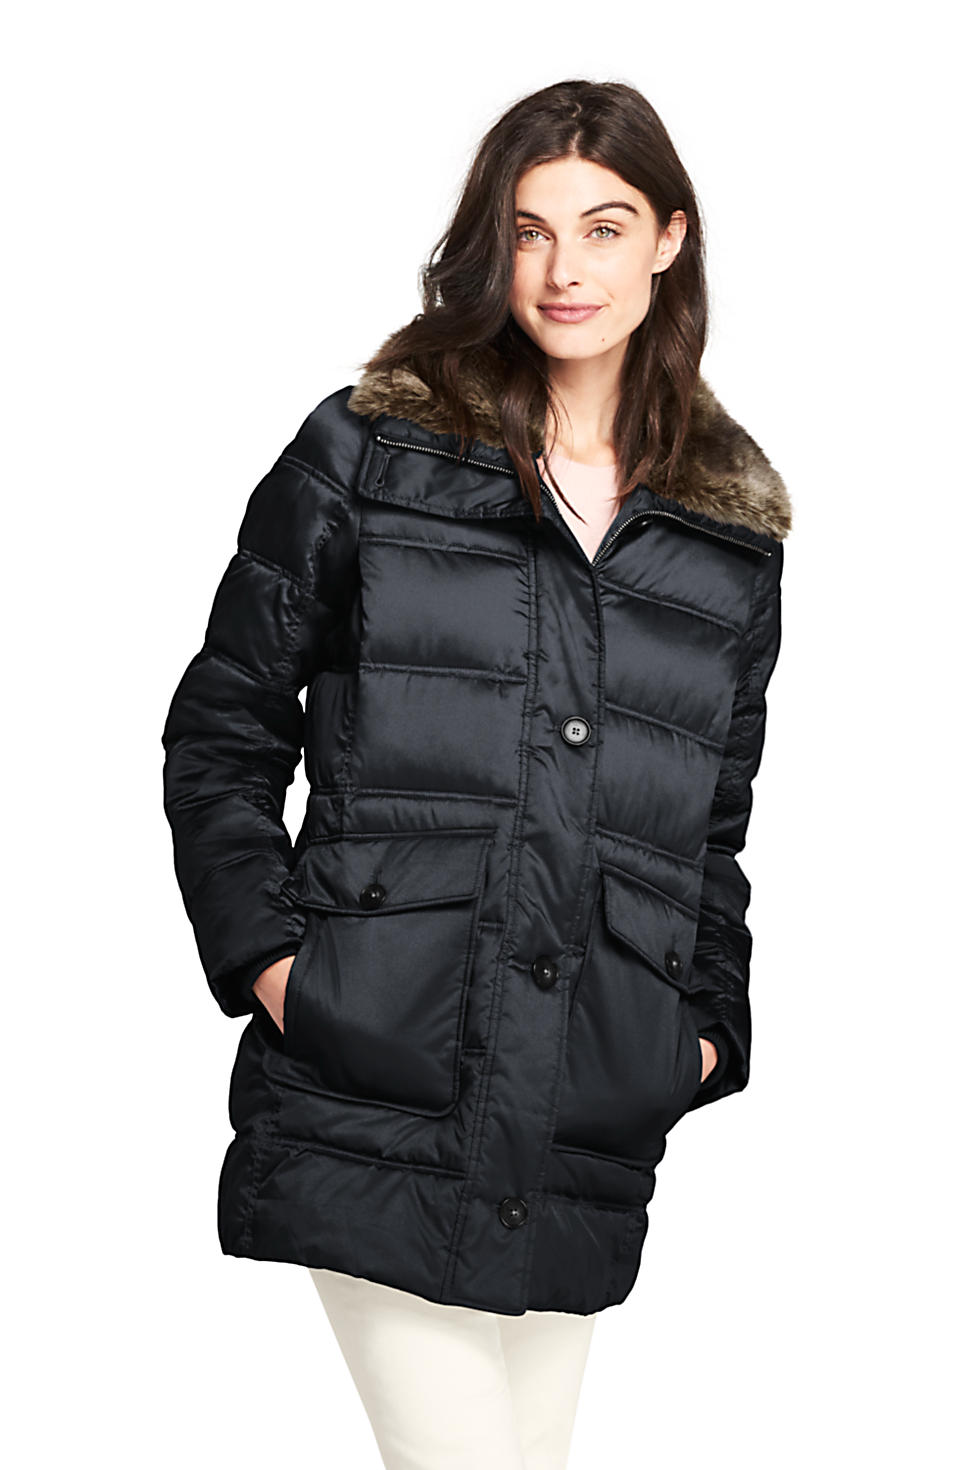 Lands End Women's Insulated Winter Puffer Parka (various colors/sizes)